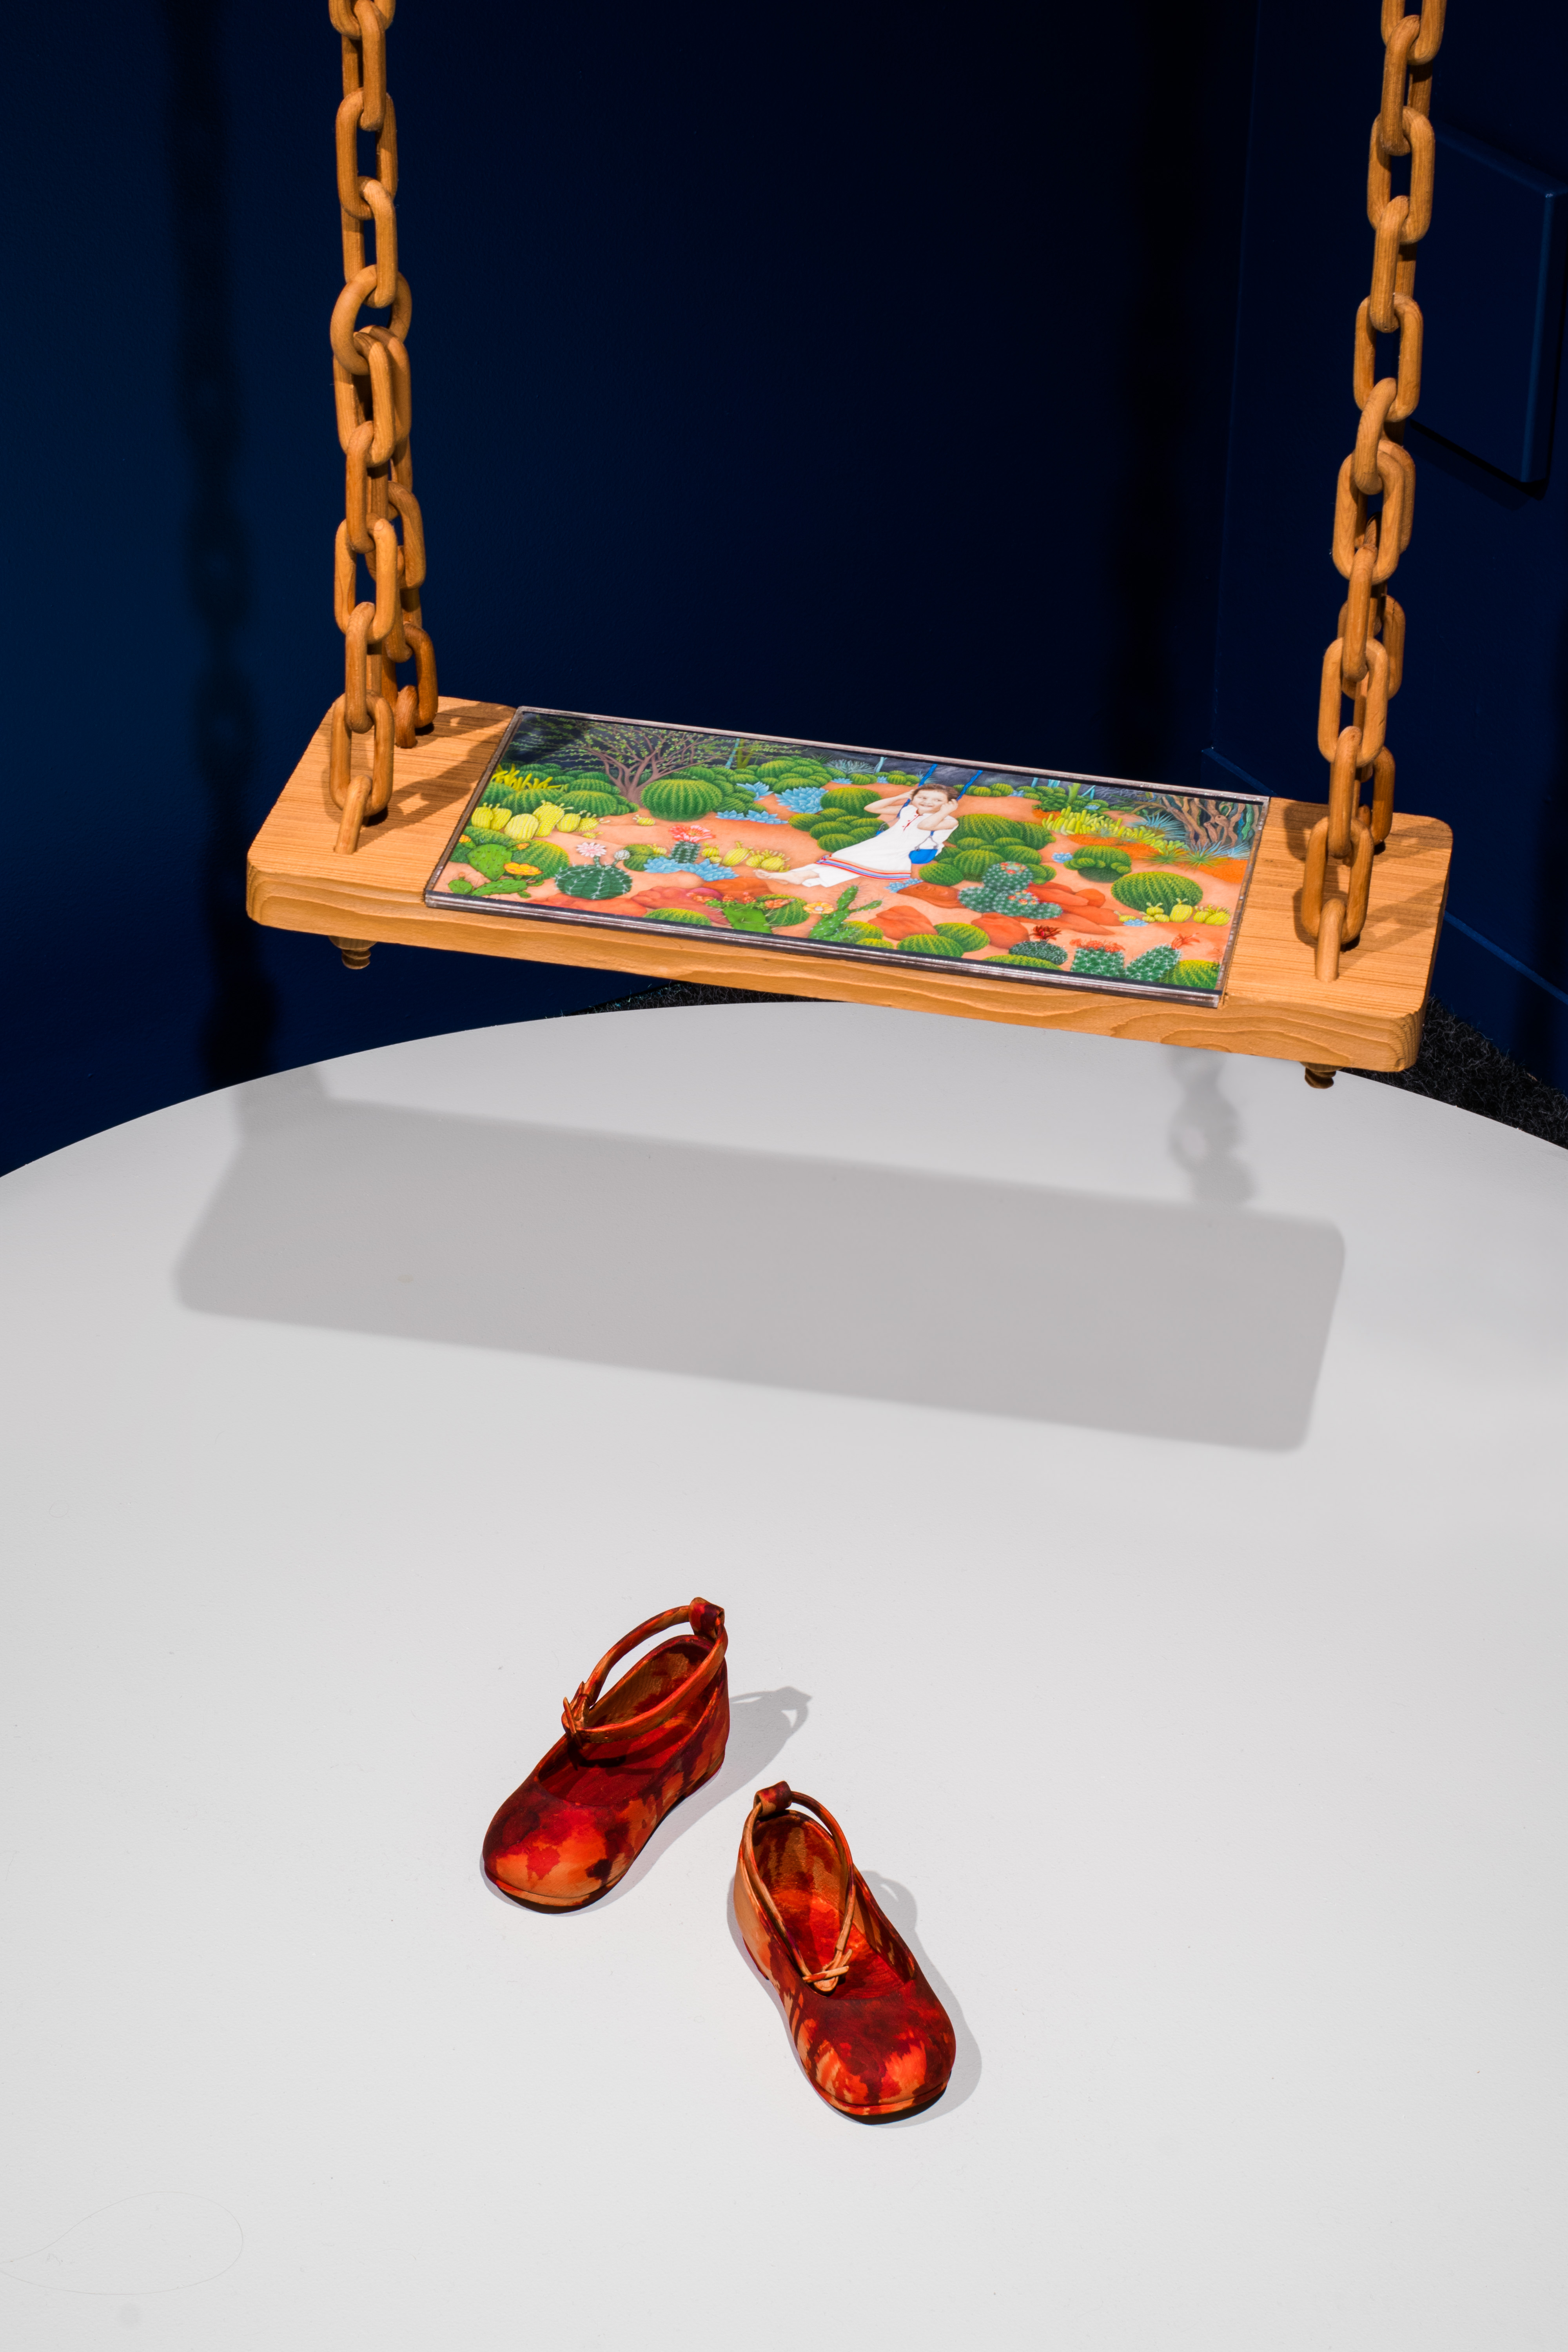 Title: The World is Beautiful, and Dangerous Too Medium:  Swing: Pine wood, carved;  Shoes: Pine wood, carved; red wood stain Installation: 120 x 36 x 36 inches year: 2017 Photo credits: Emilie Smith